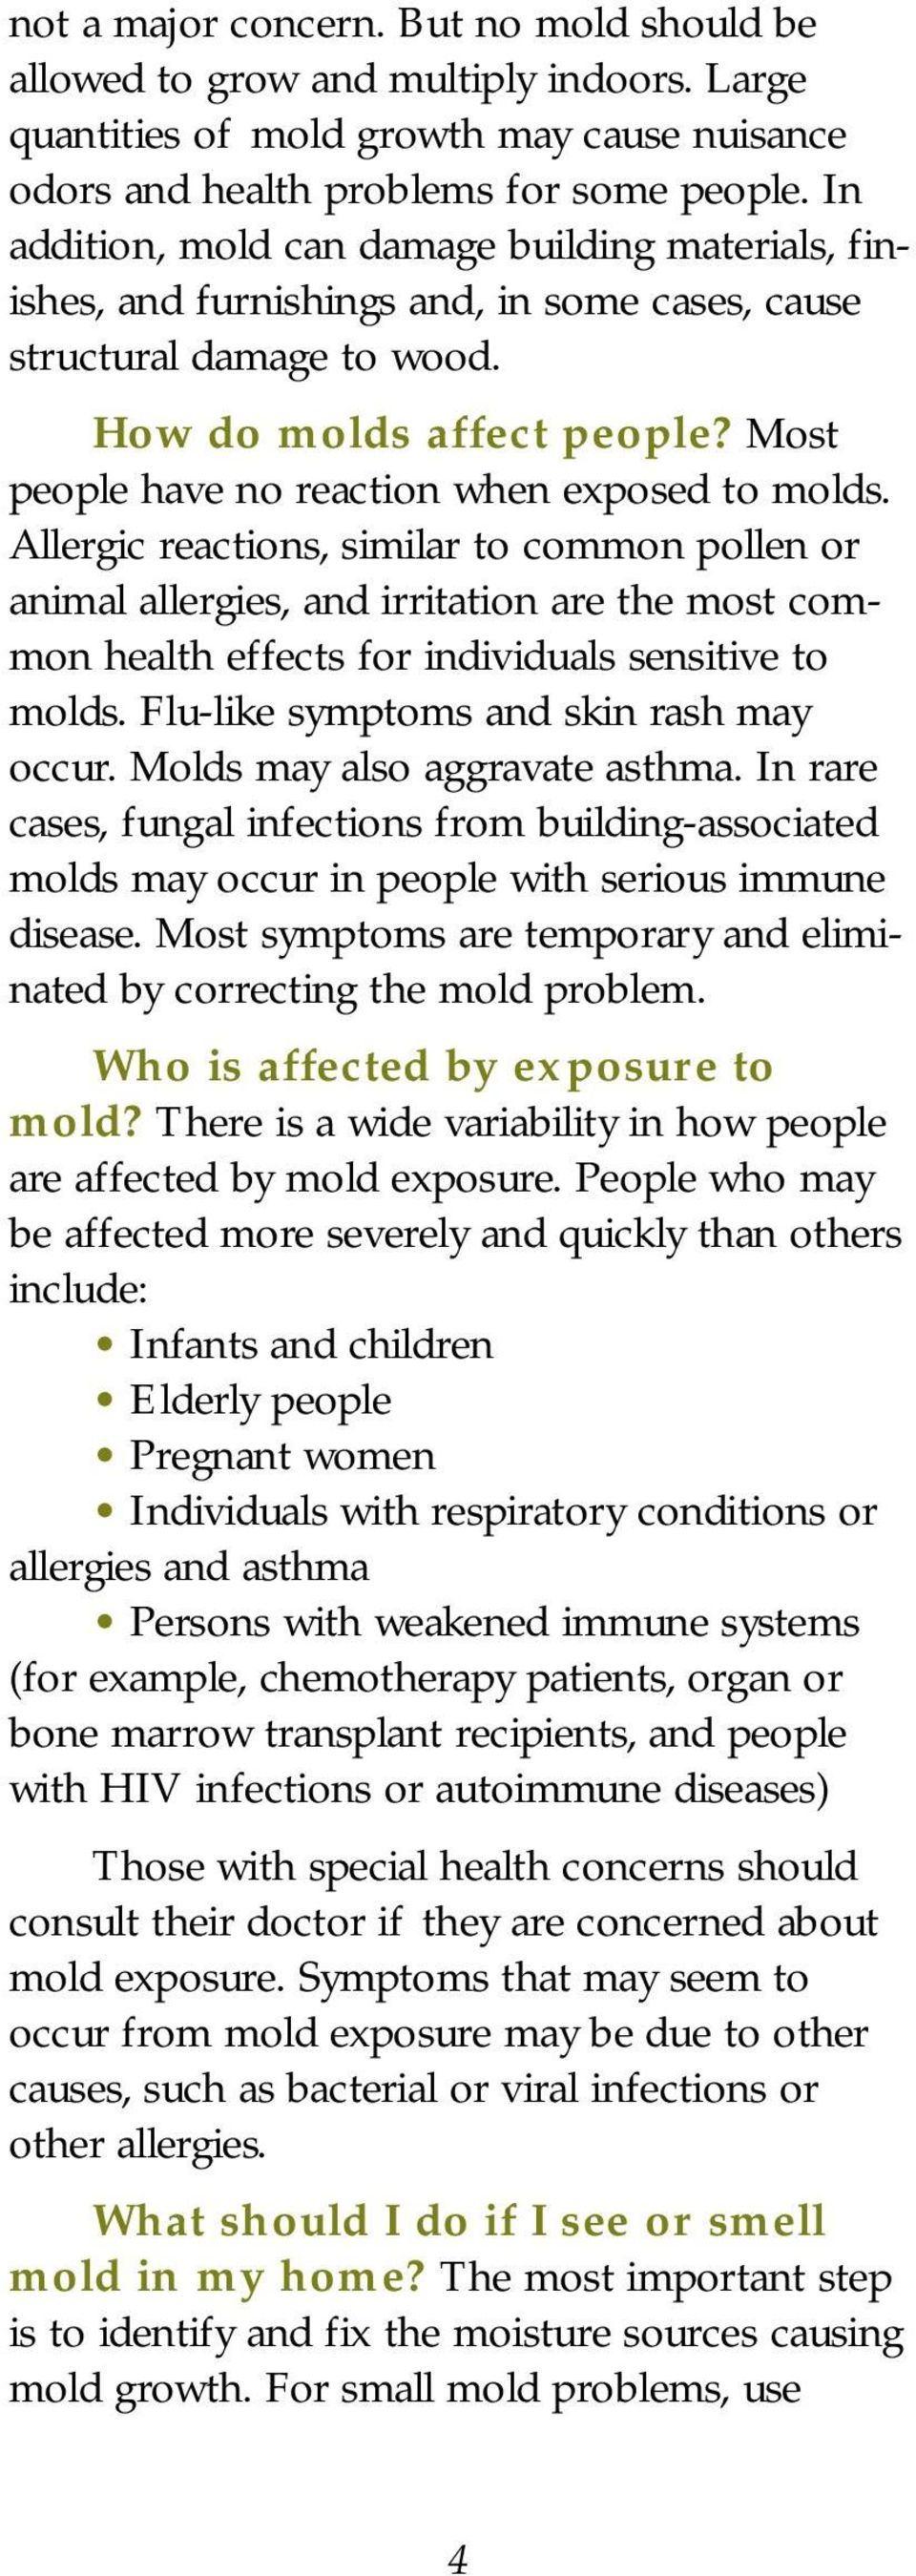 Most people have no reaction when exposed to molds.